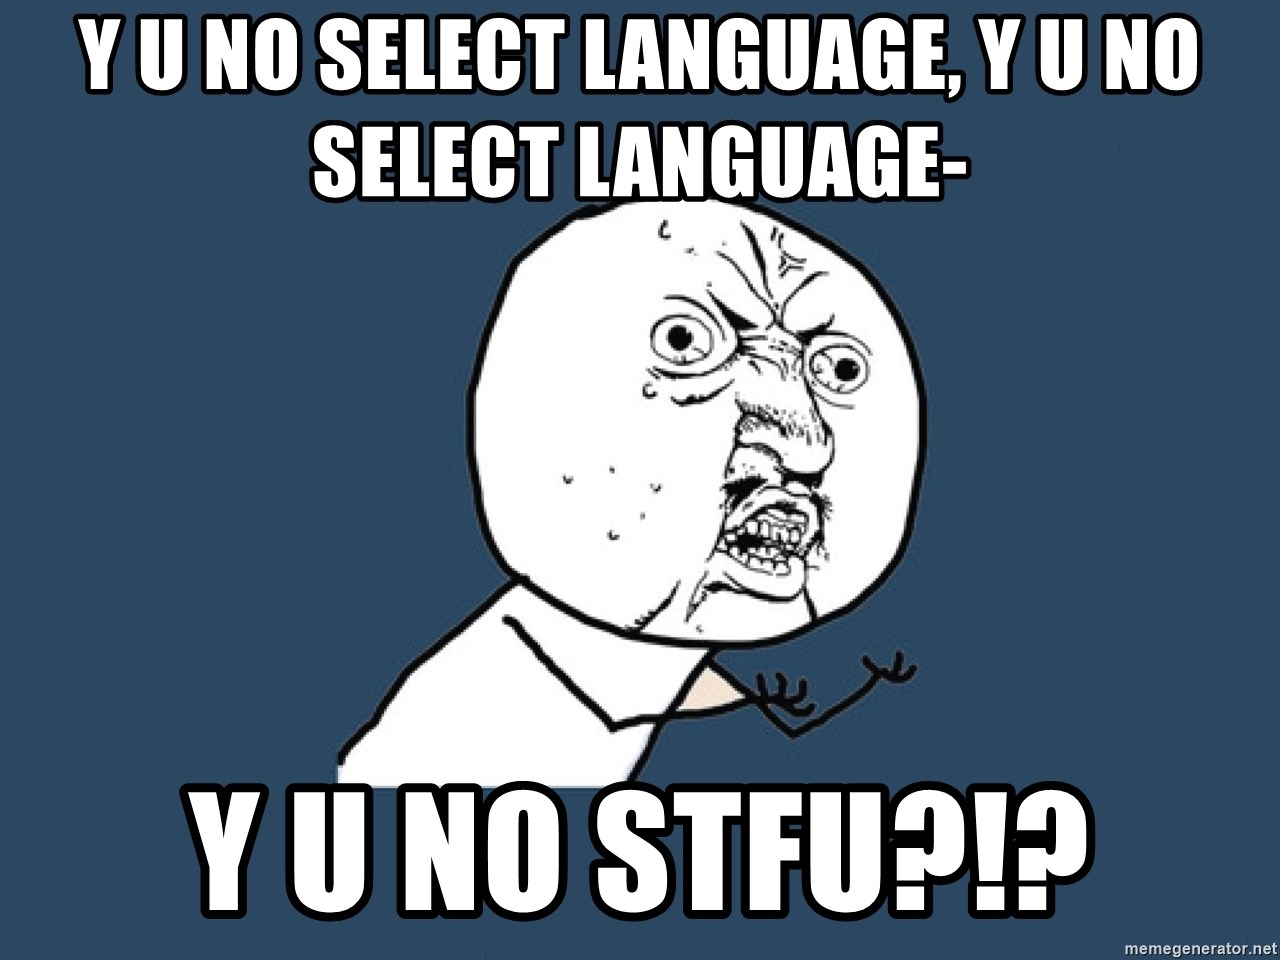 Y U No - y u no select language, y u no select language- y u no stfu?!?